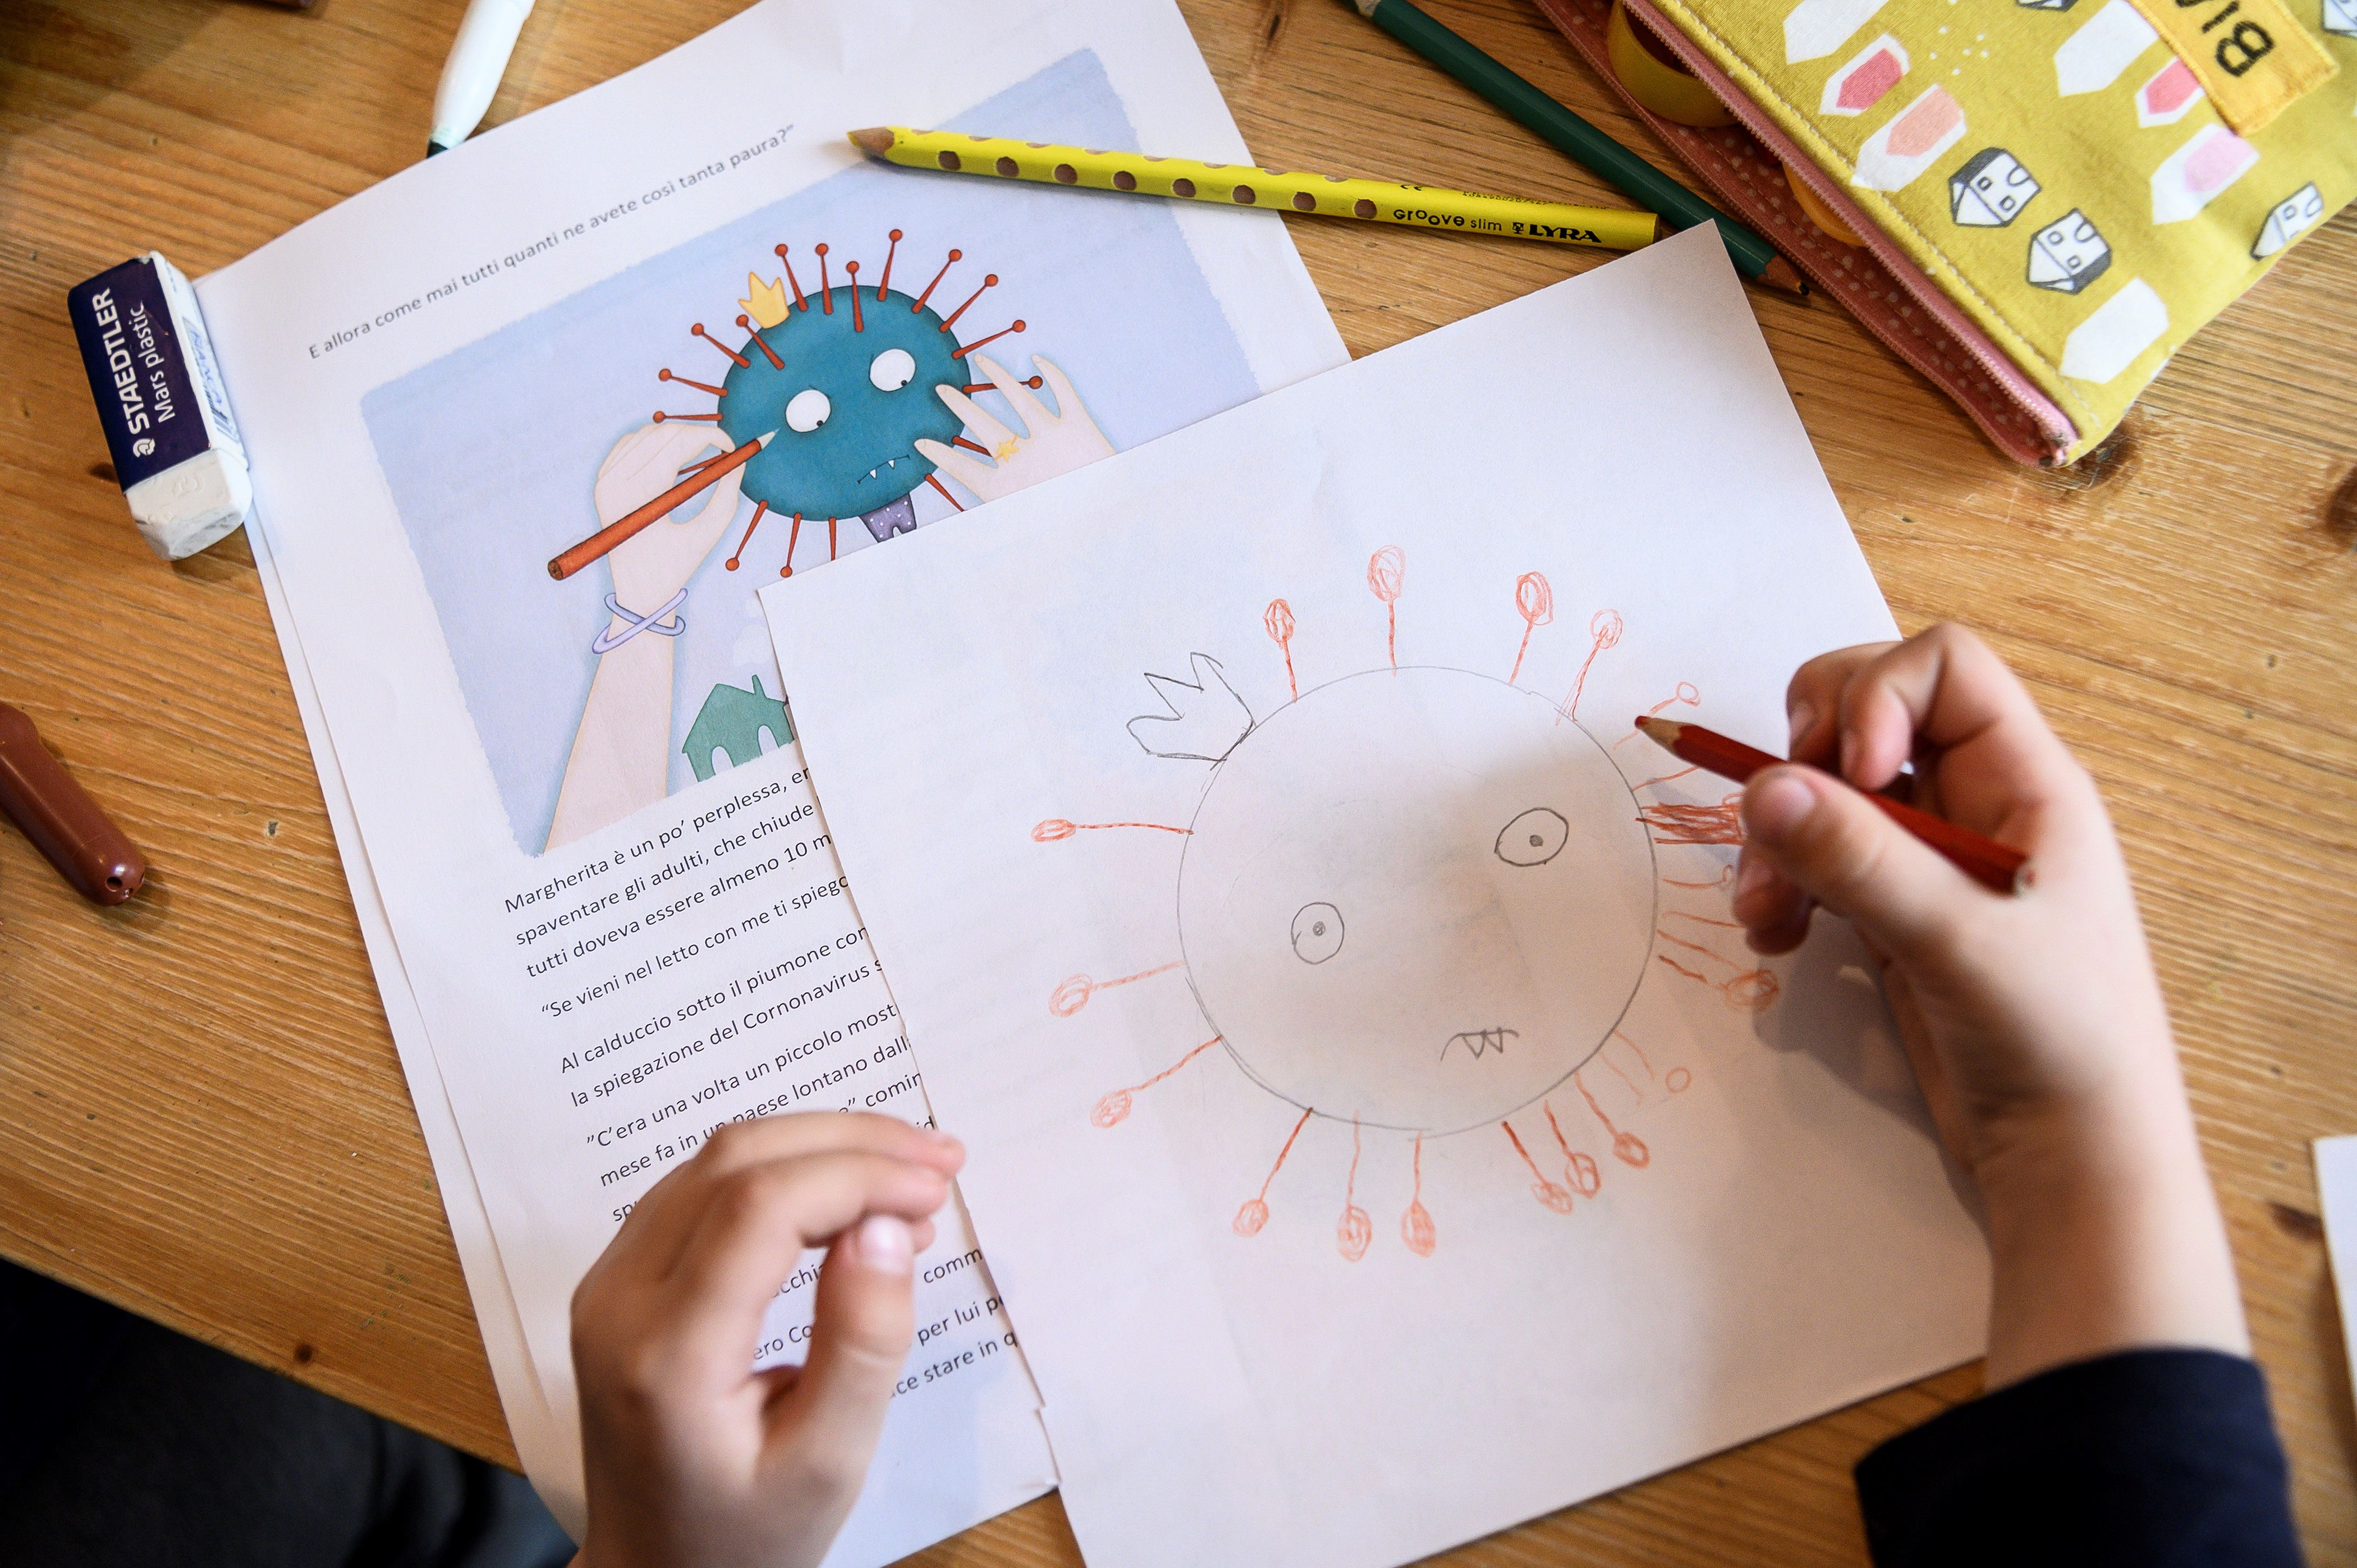 A child draws a COVID-19 coronavirus as part of school homeworks. (Photo by MARCO BERTORELLO/AFP via Getty Images)